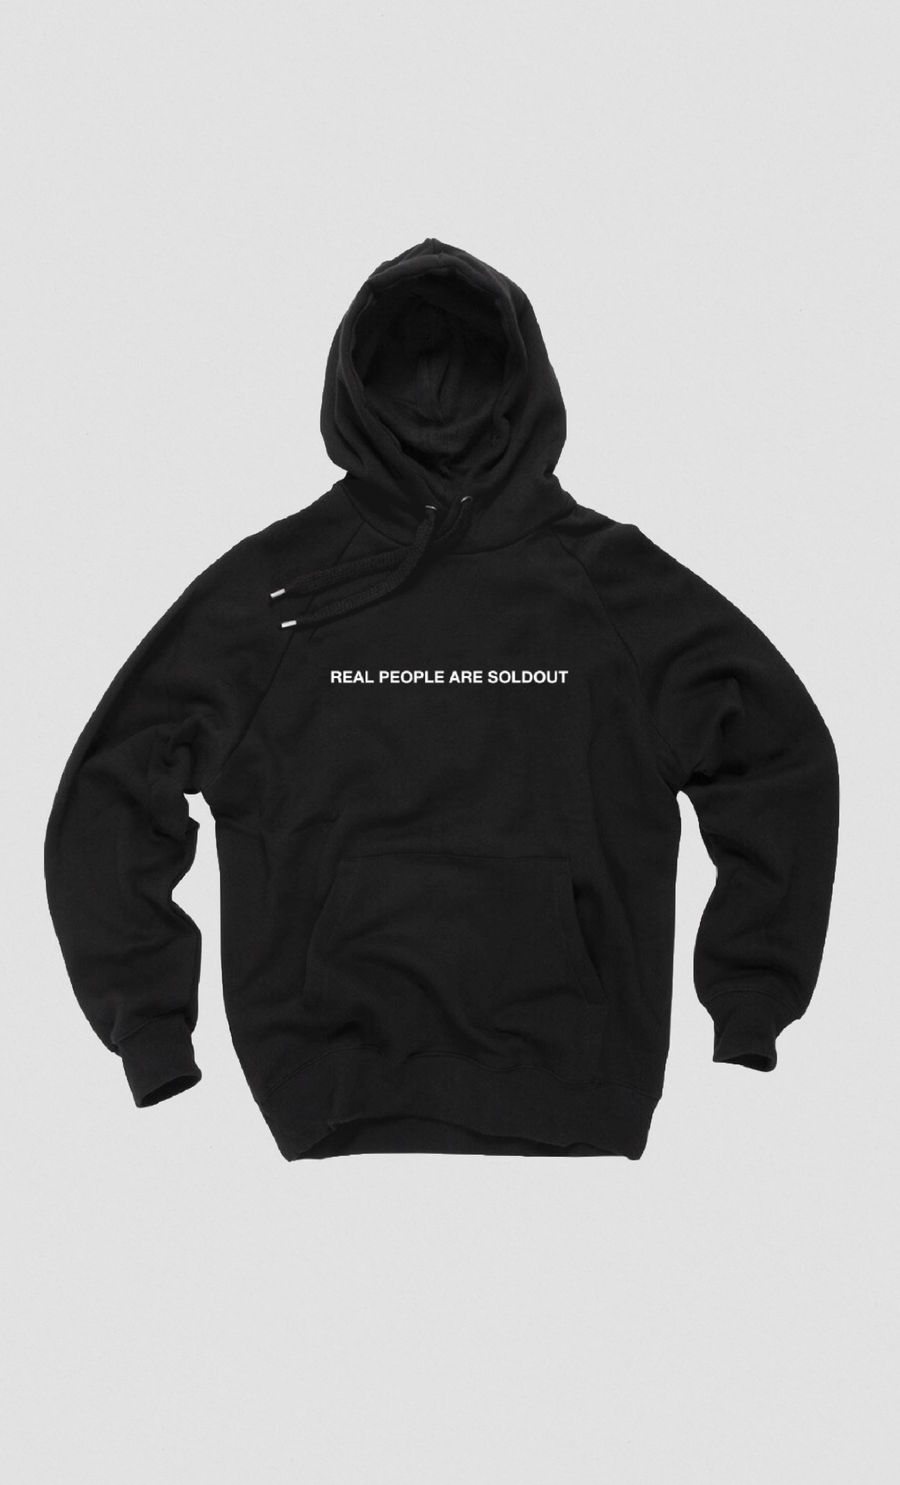 Image of REAL PEOPLE ARE SOLDOUT BLACK HOODIE //PRE ORDER